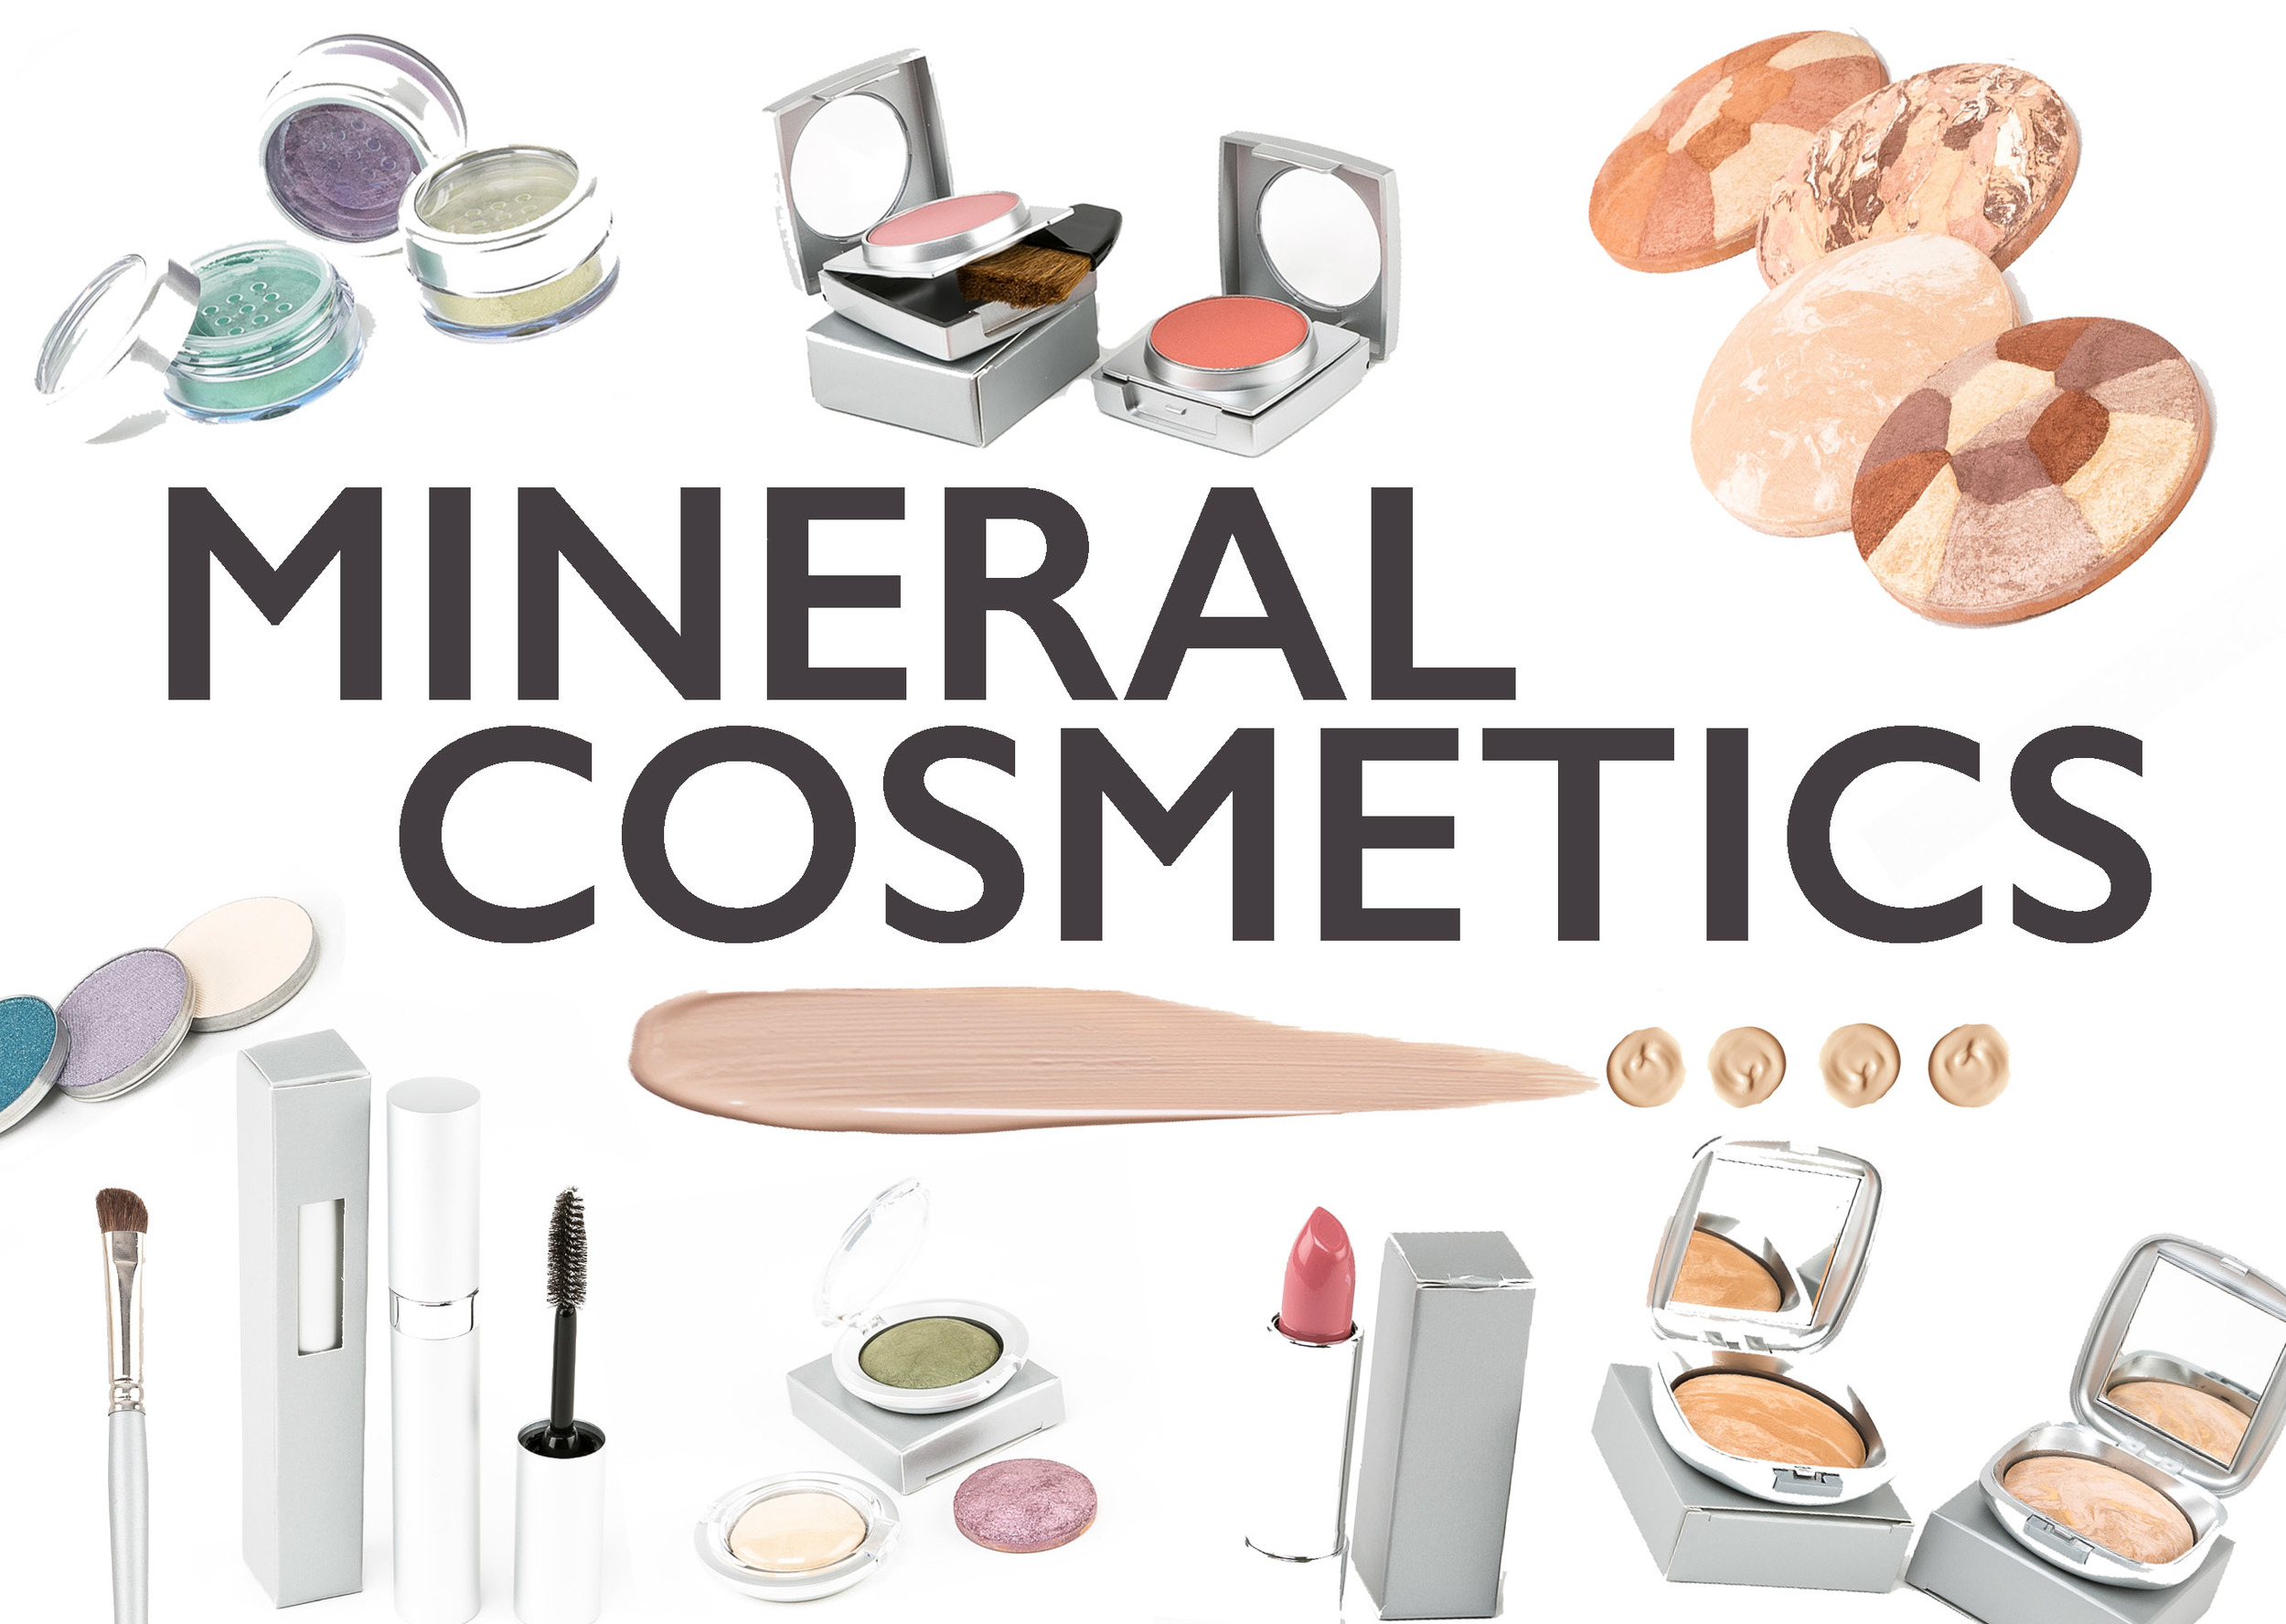 CLICK TO VIEW ALL MINERAL COSMETICS